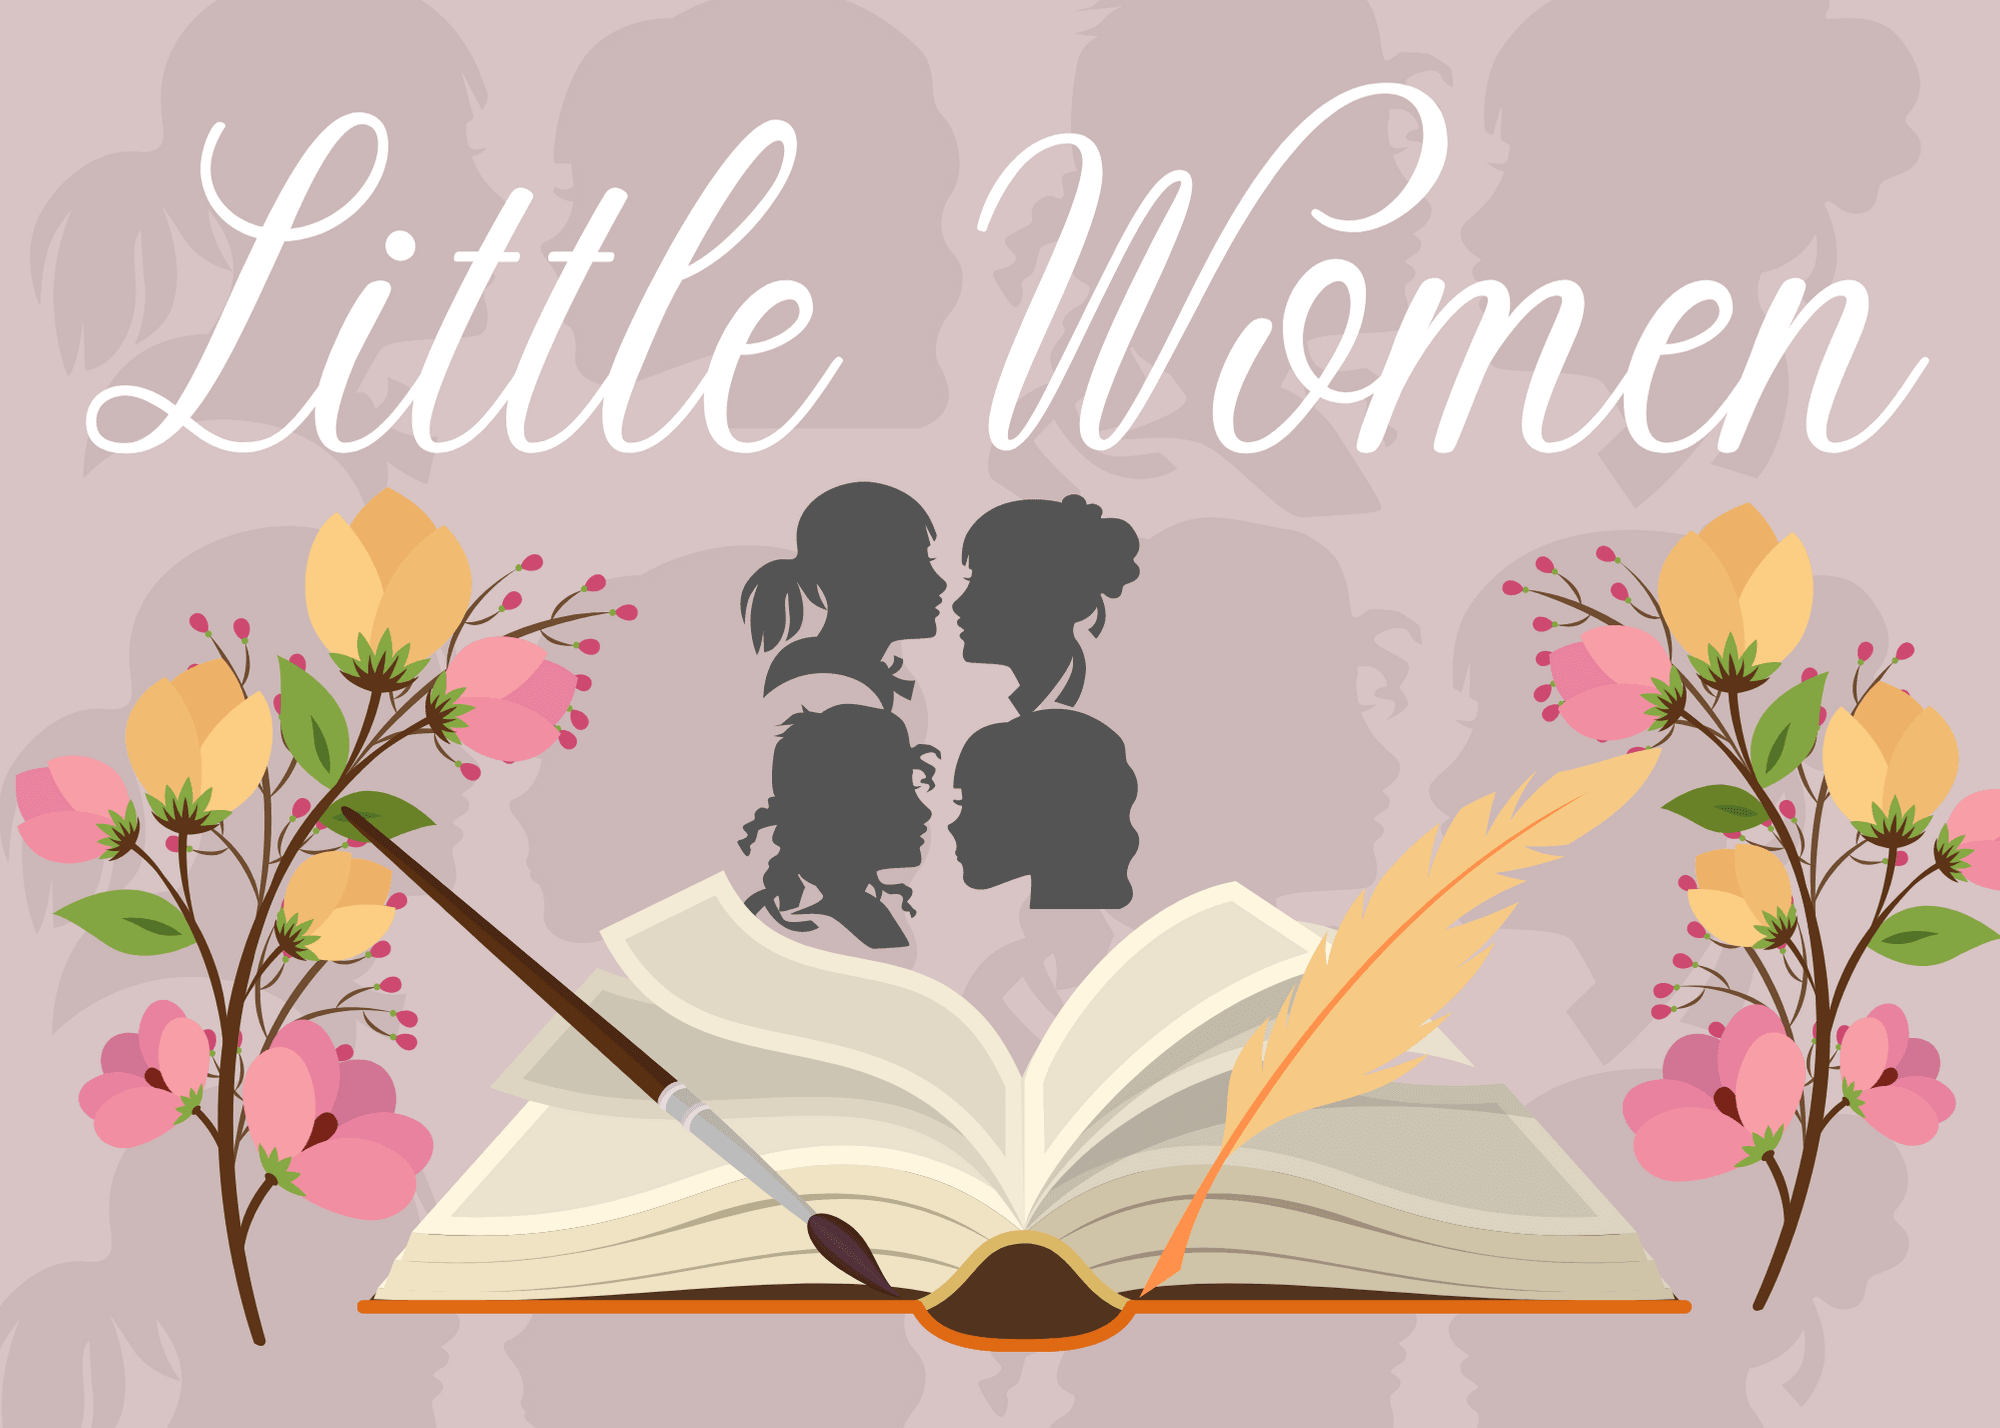 CFTA Little Women Media